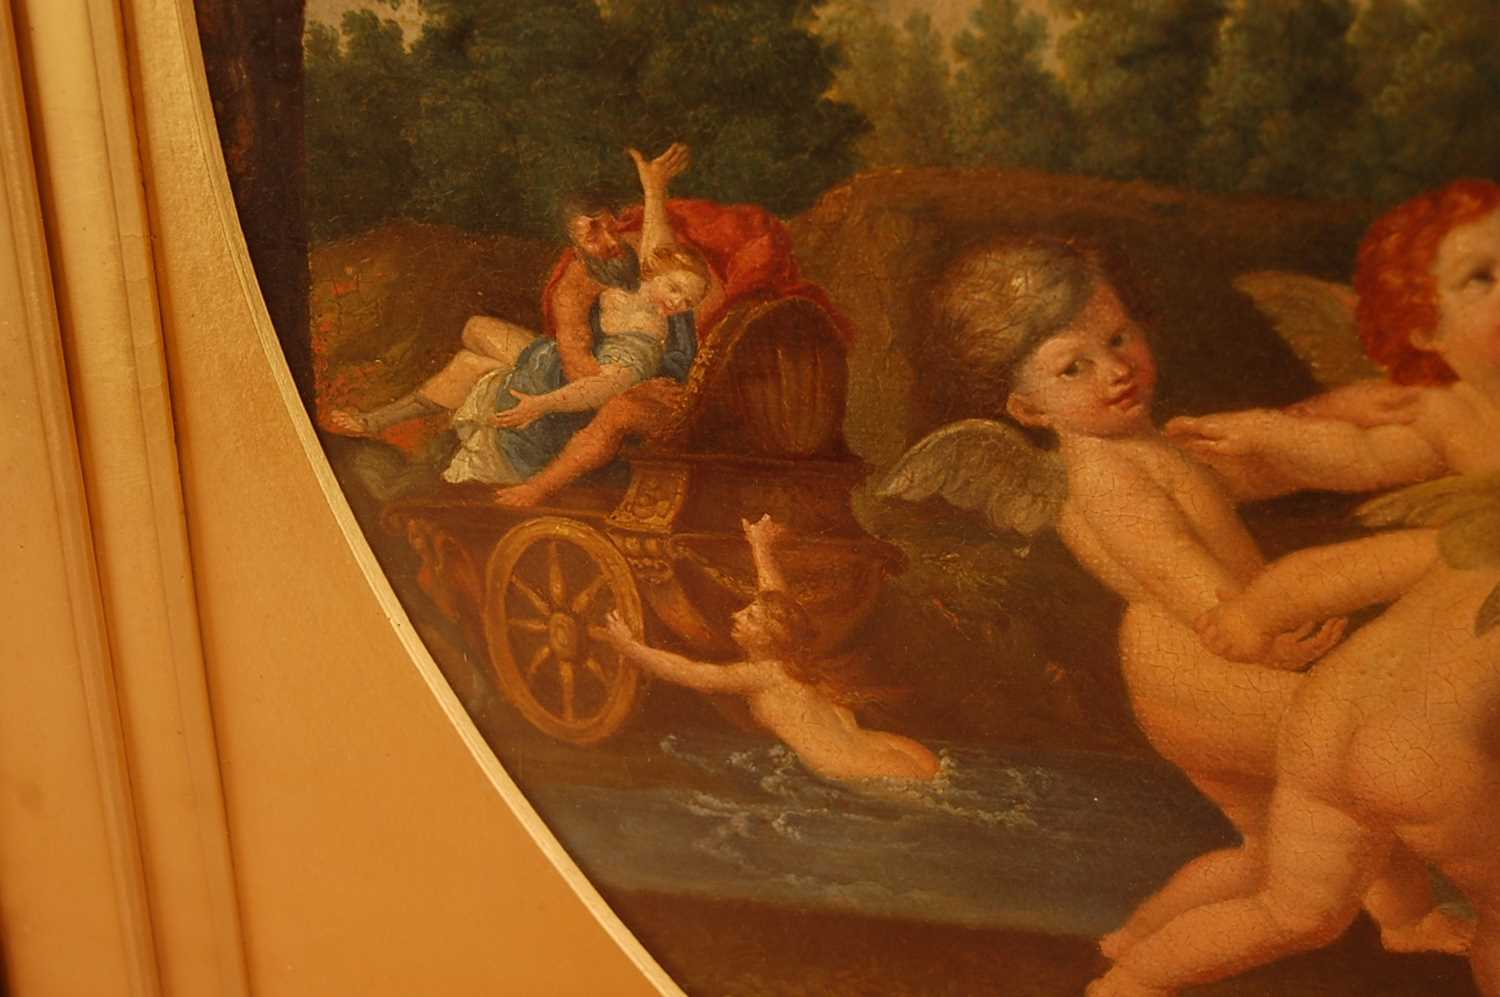 Guandallini Cententa (Italian 19th century) - Rape of Proserpine, oil on canvas, signed and dated - Image 4 of 9